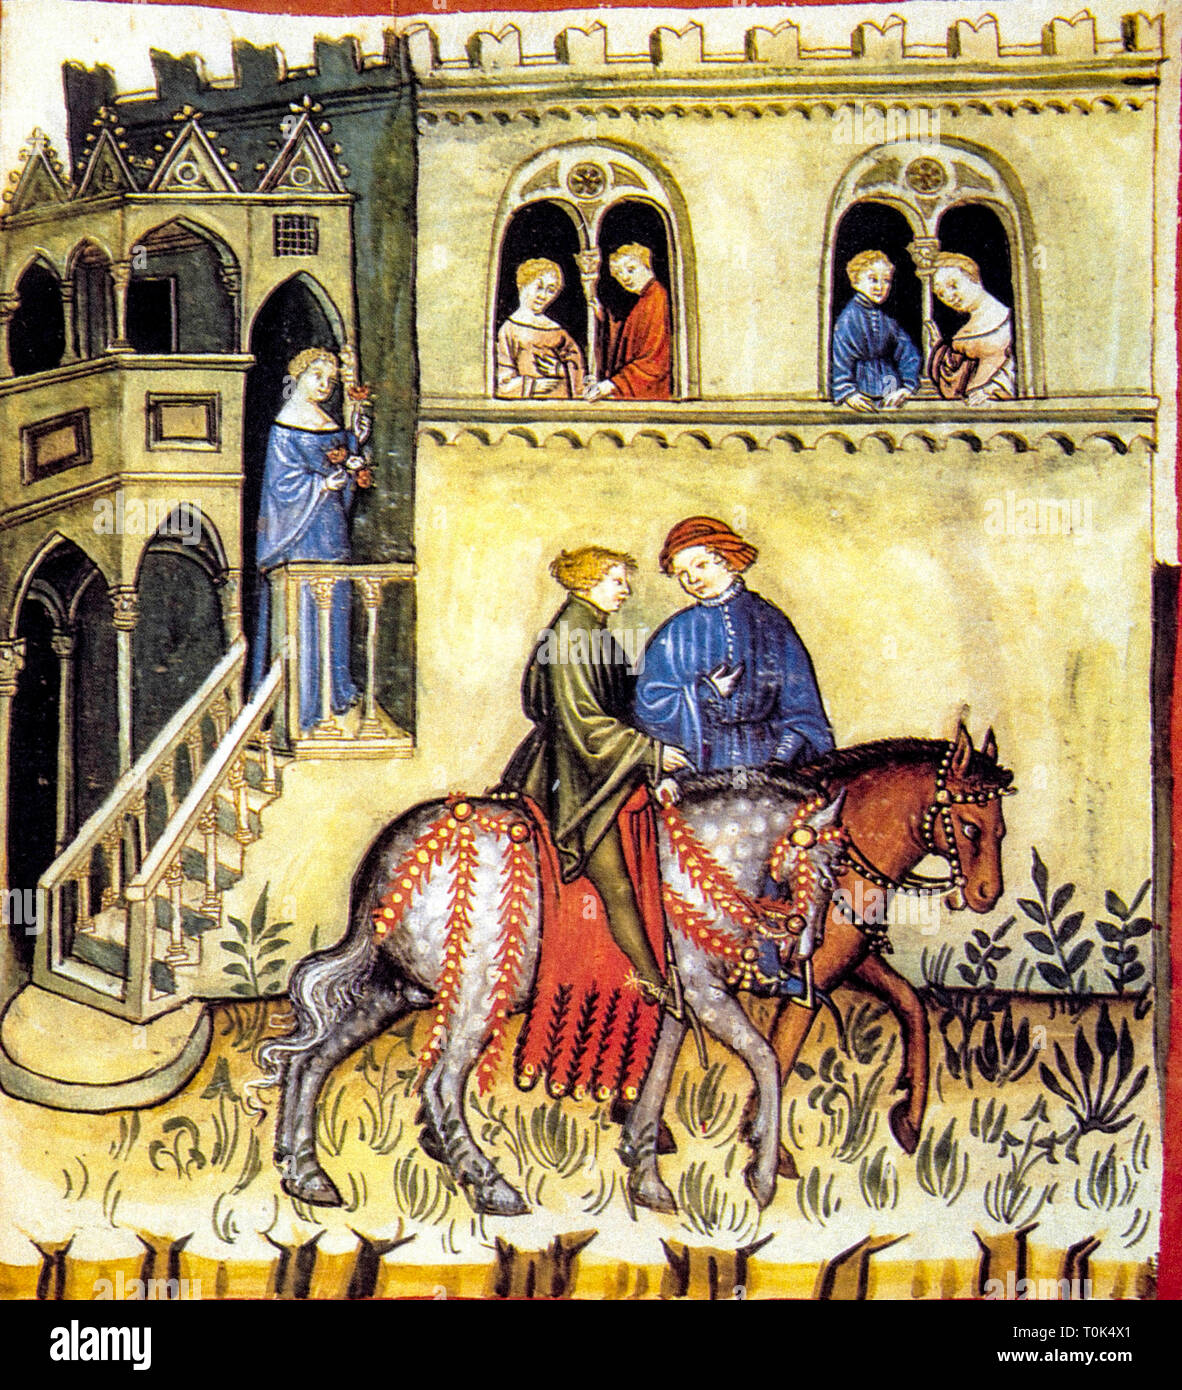 Courtly scene from the Codex Vindobonensis - Stock Image